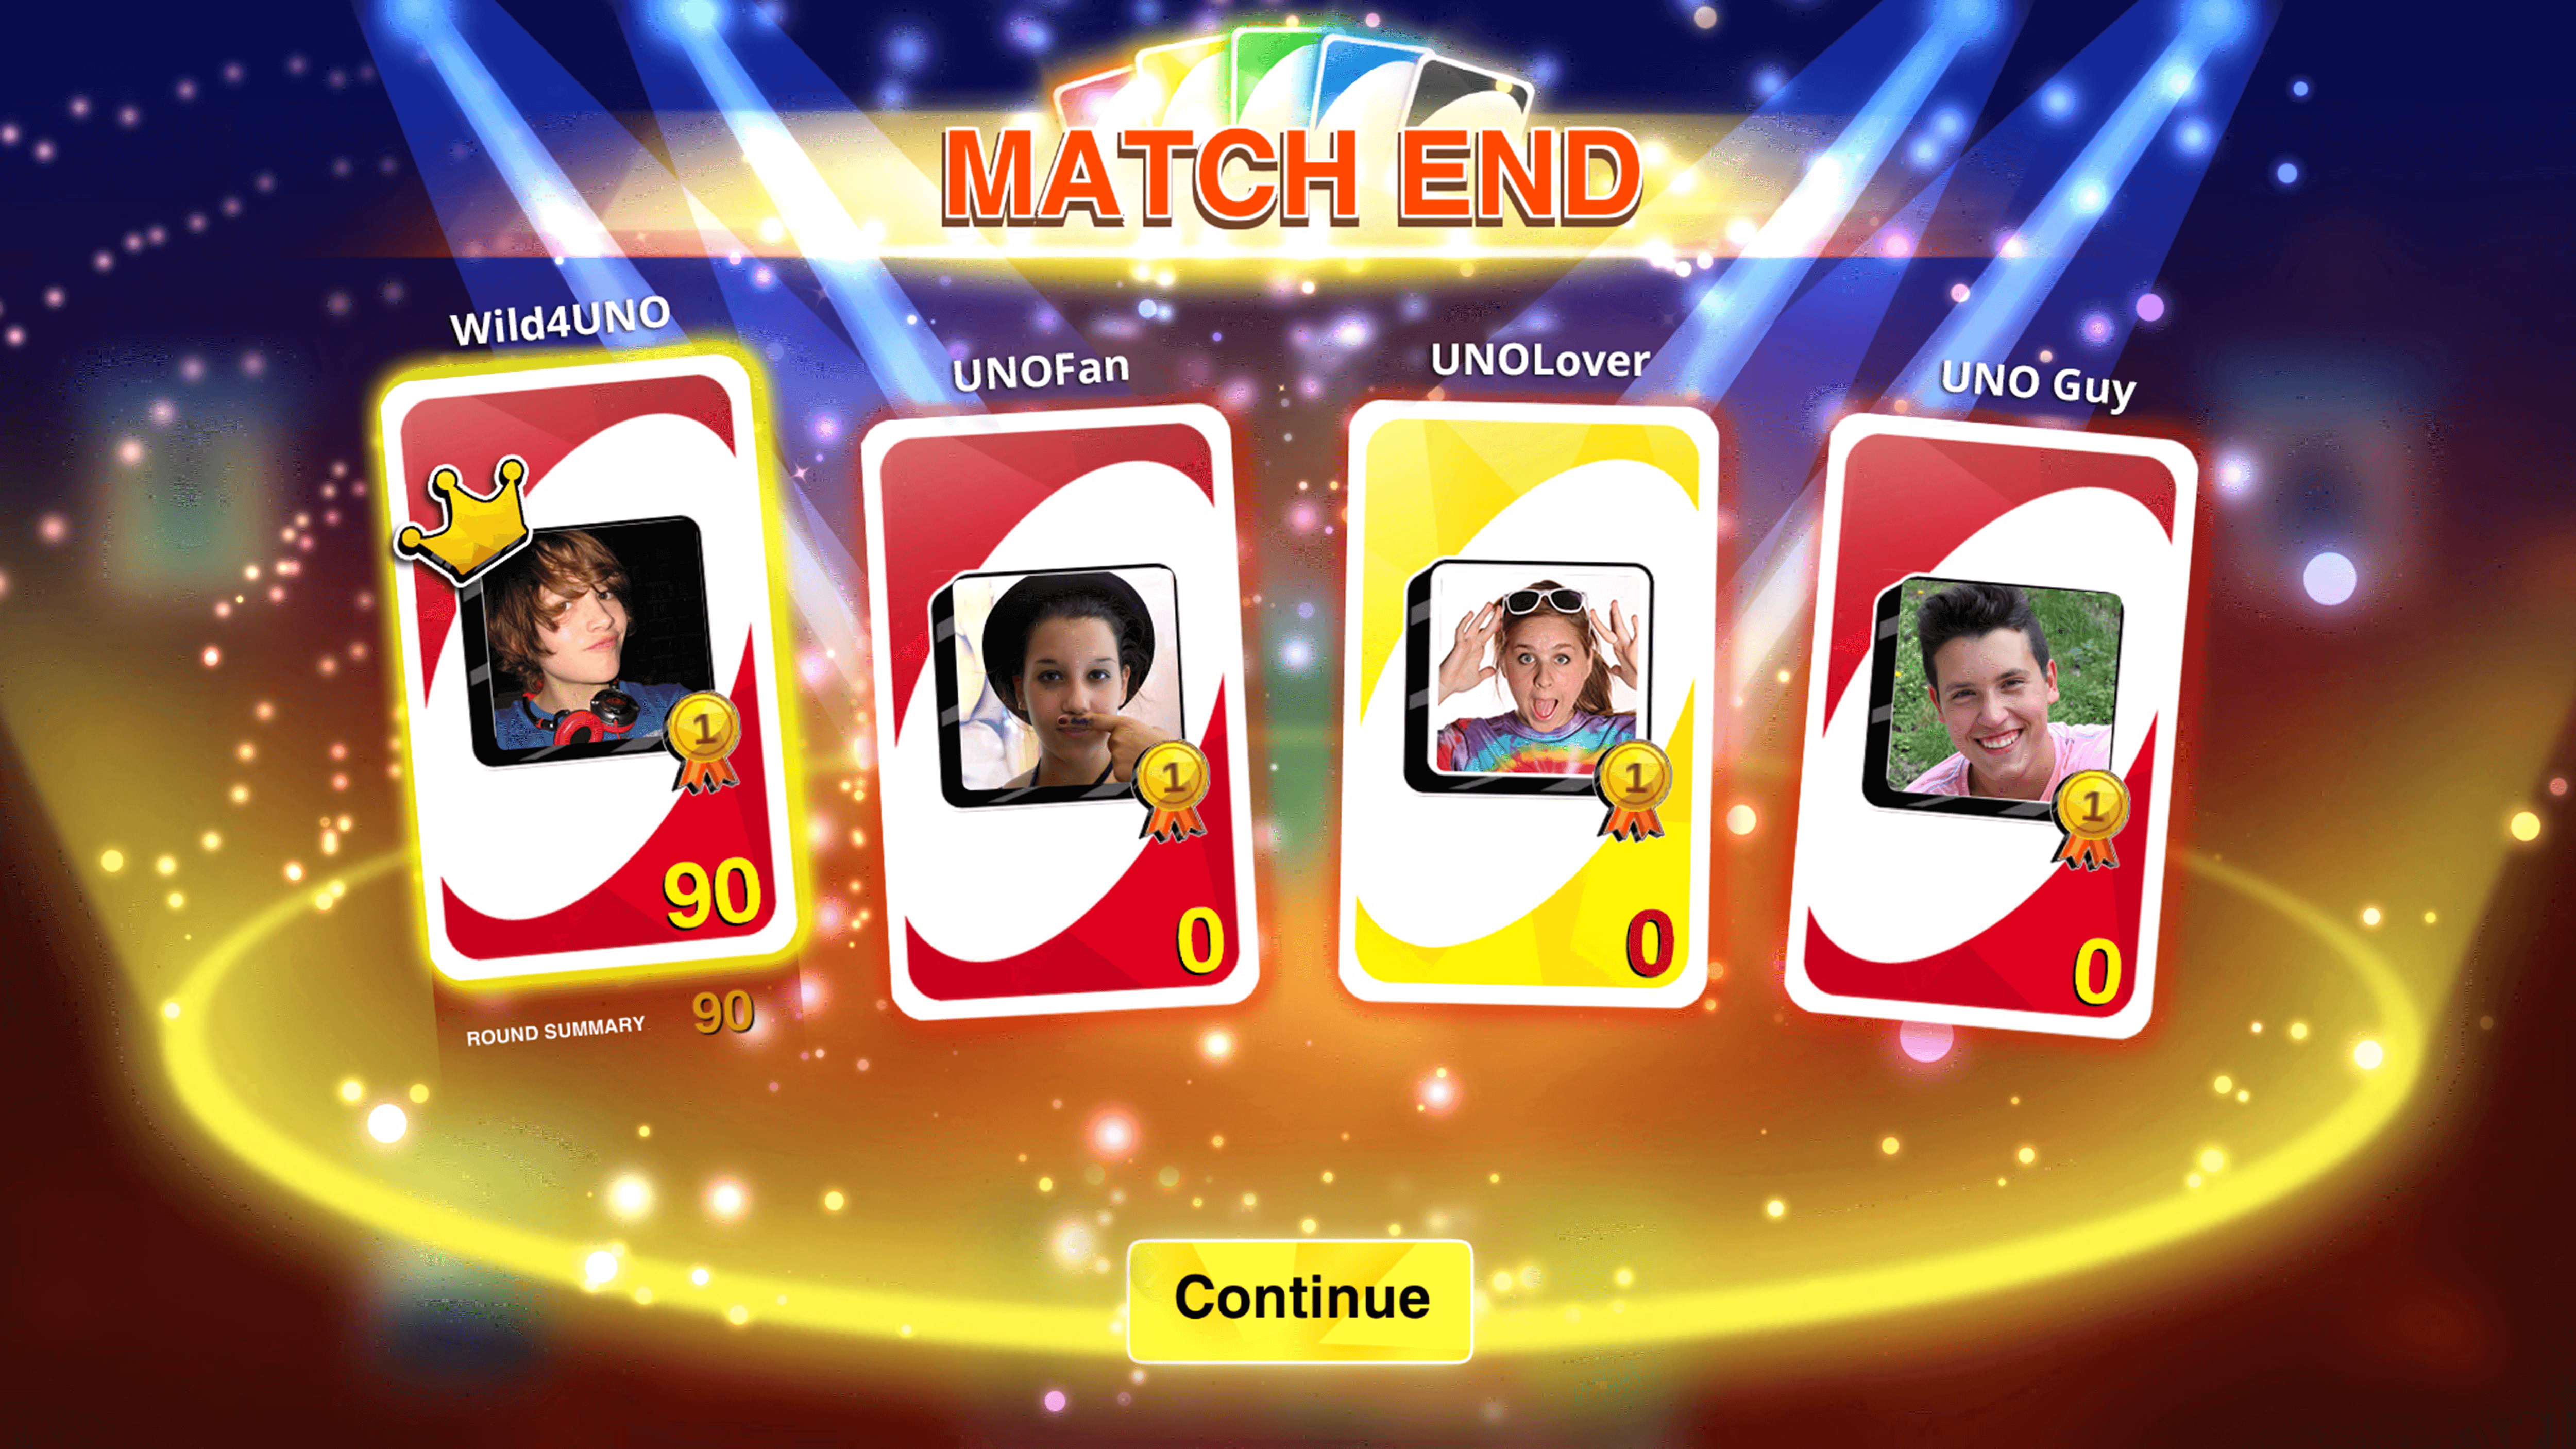 Playing UNO Online